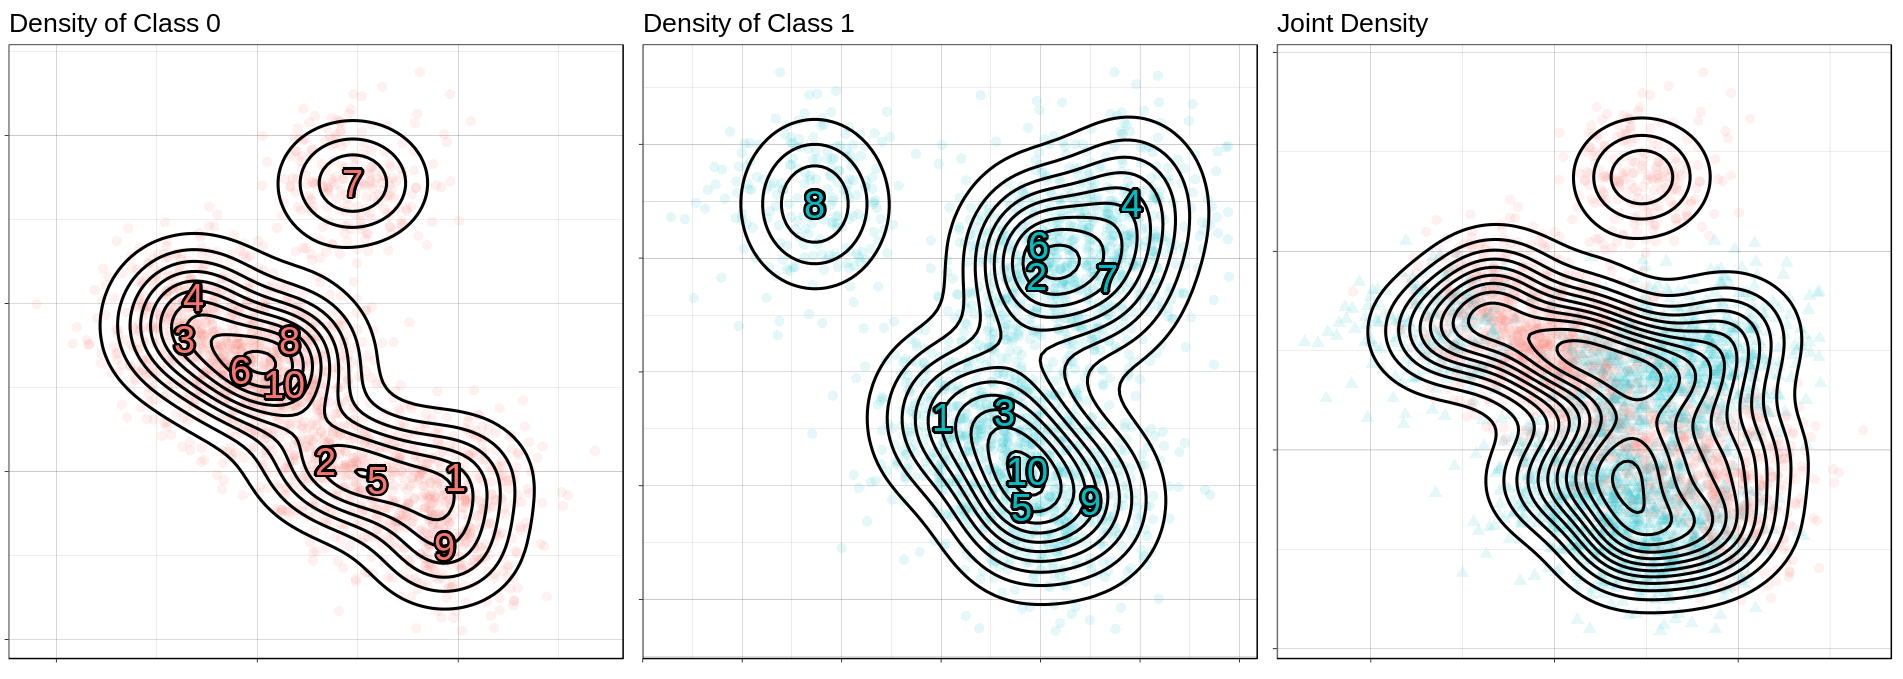 Contours of the feature distributions for each class.